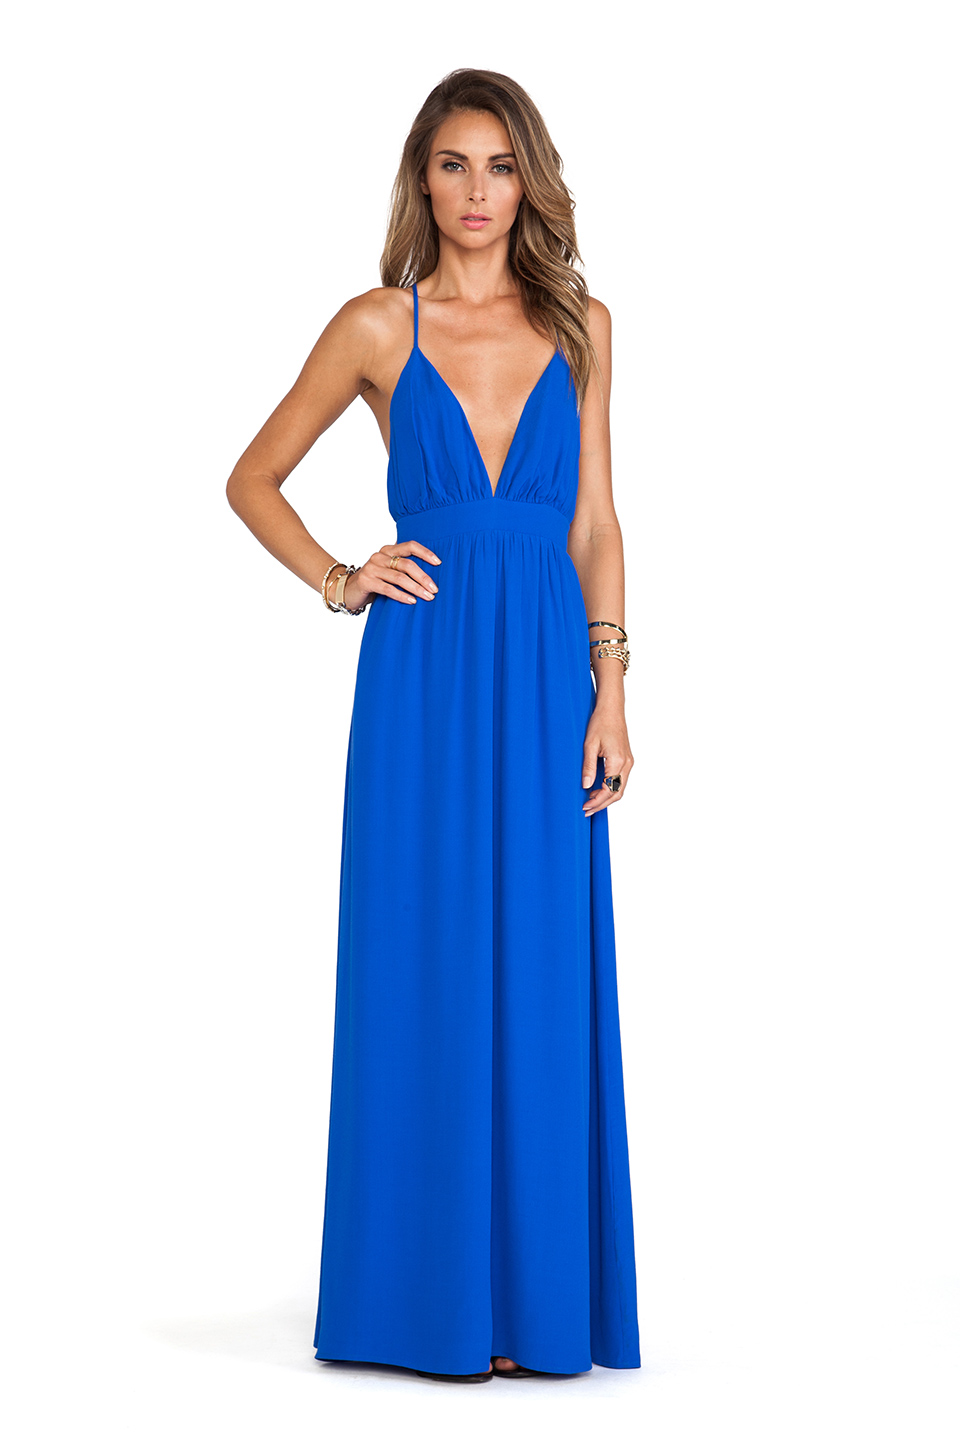 Plus Size Maxi Dresses For Sale - Holiday Dresses